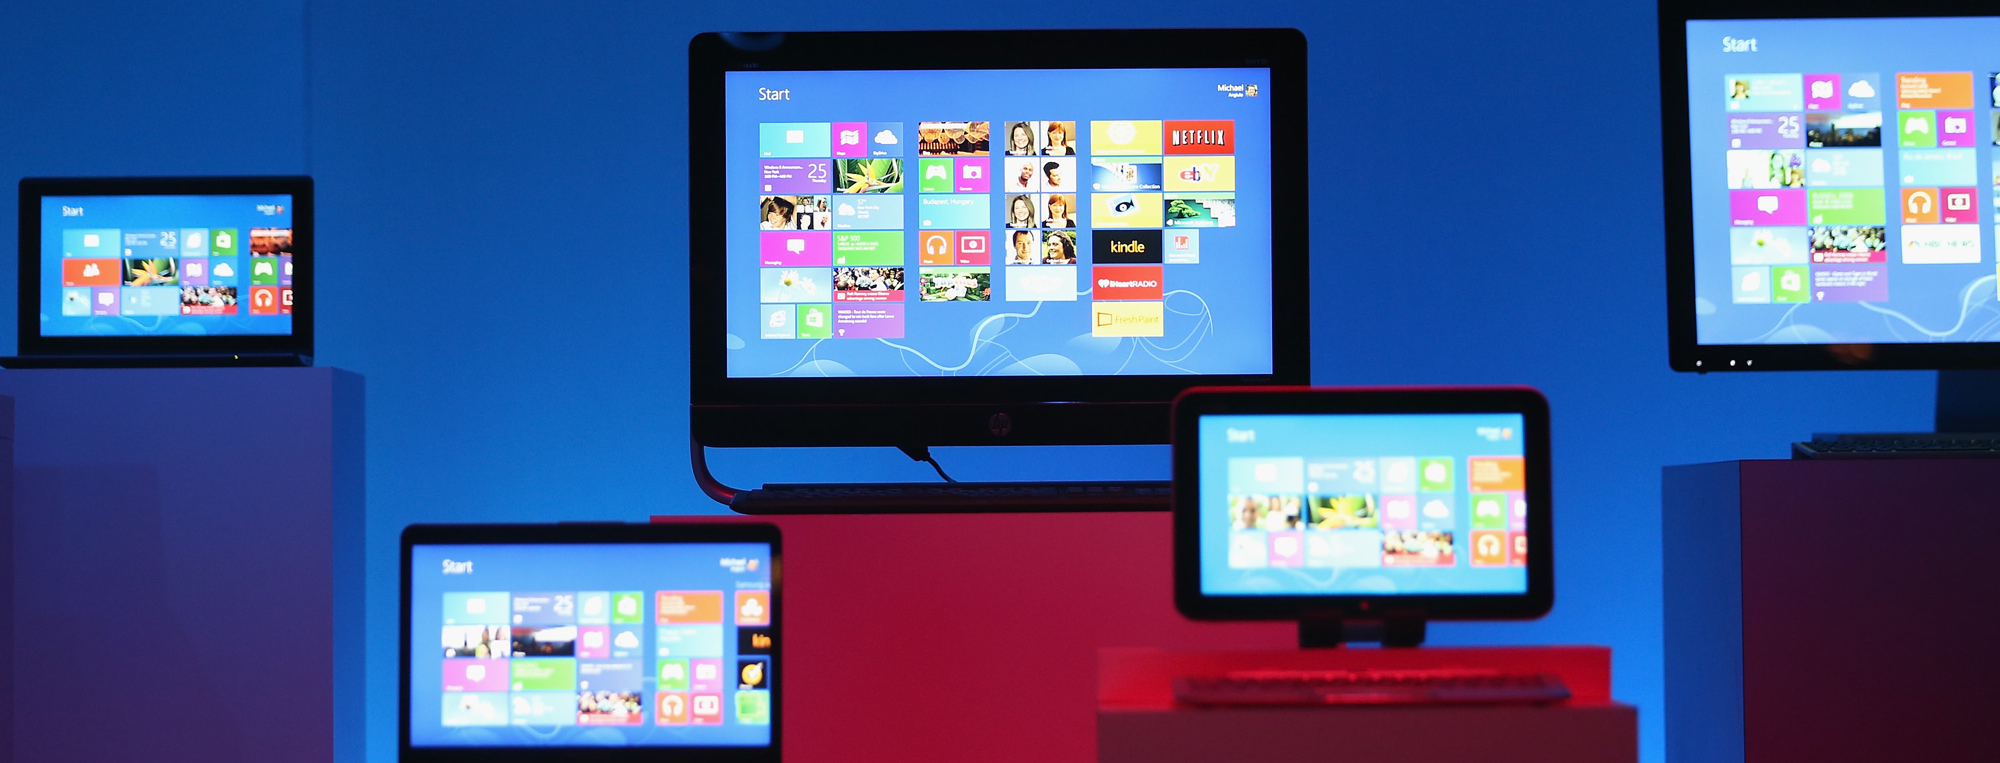 Microsoft Accepts Universal Windows Apps, Windows Phone 8.1 Apps